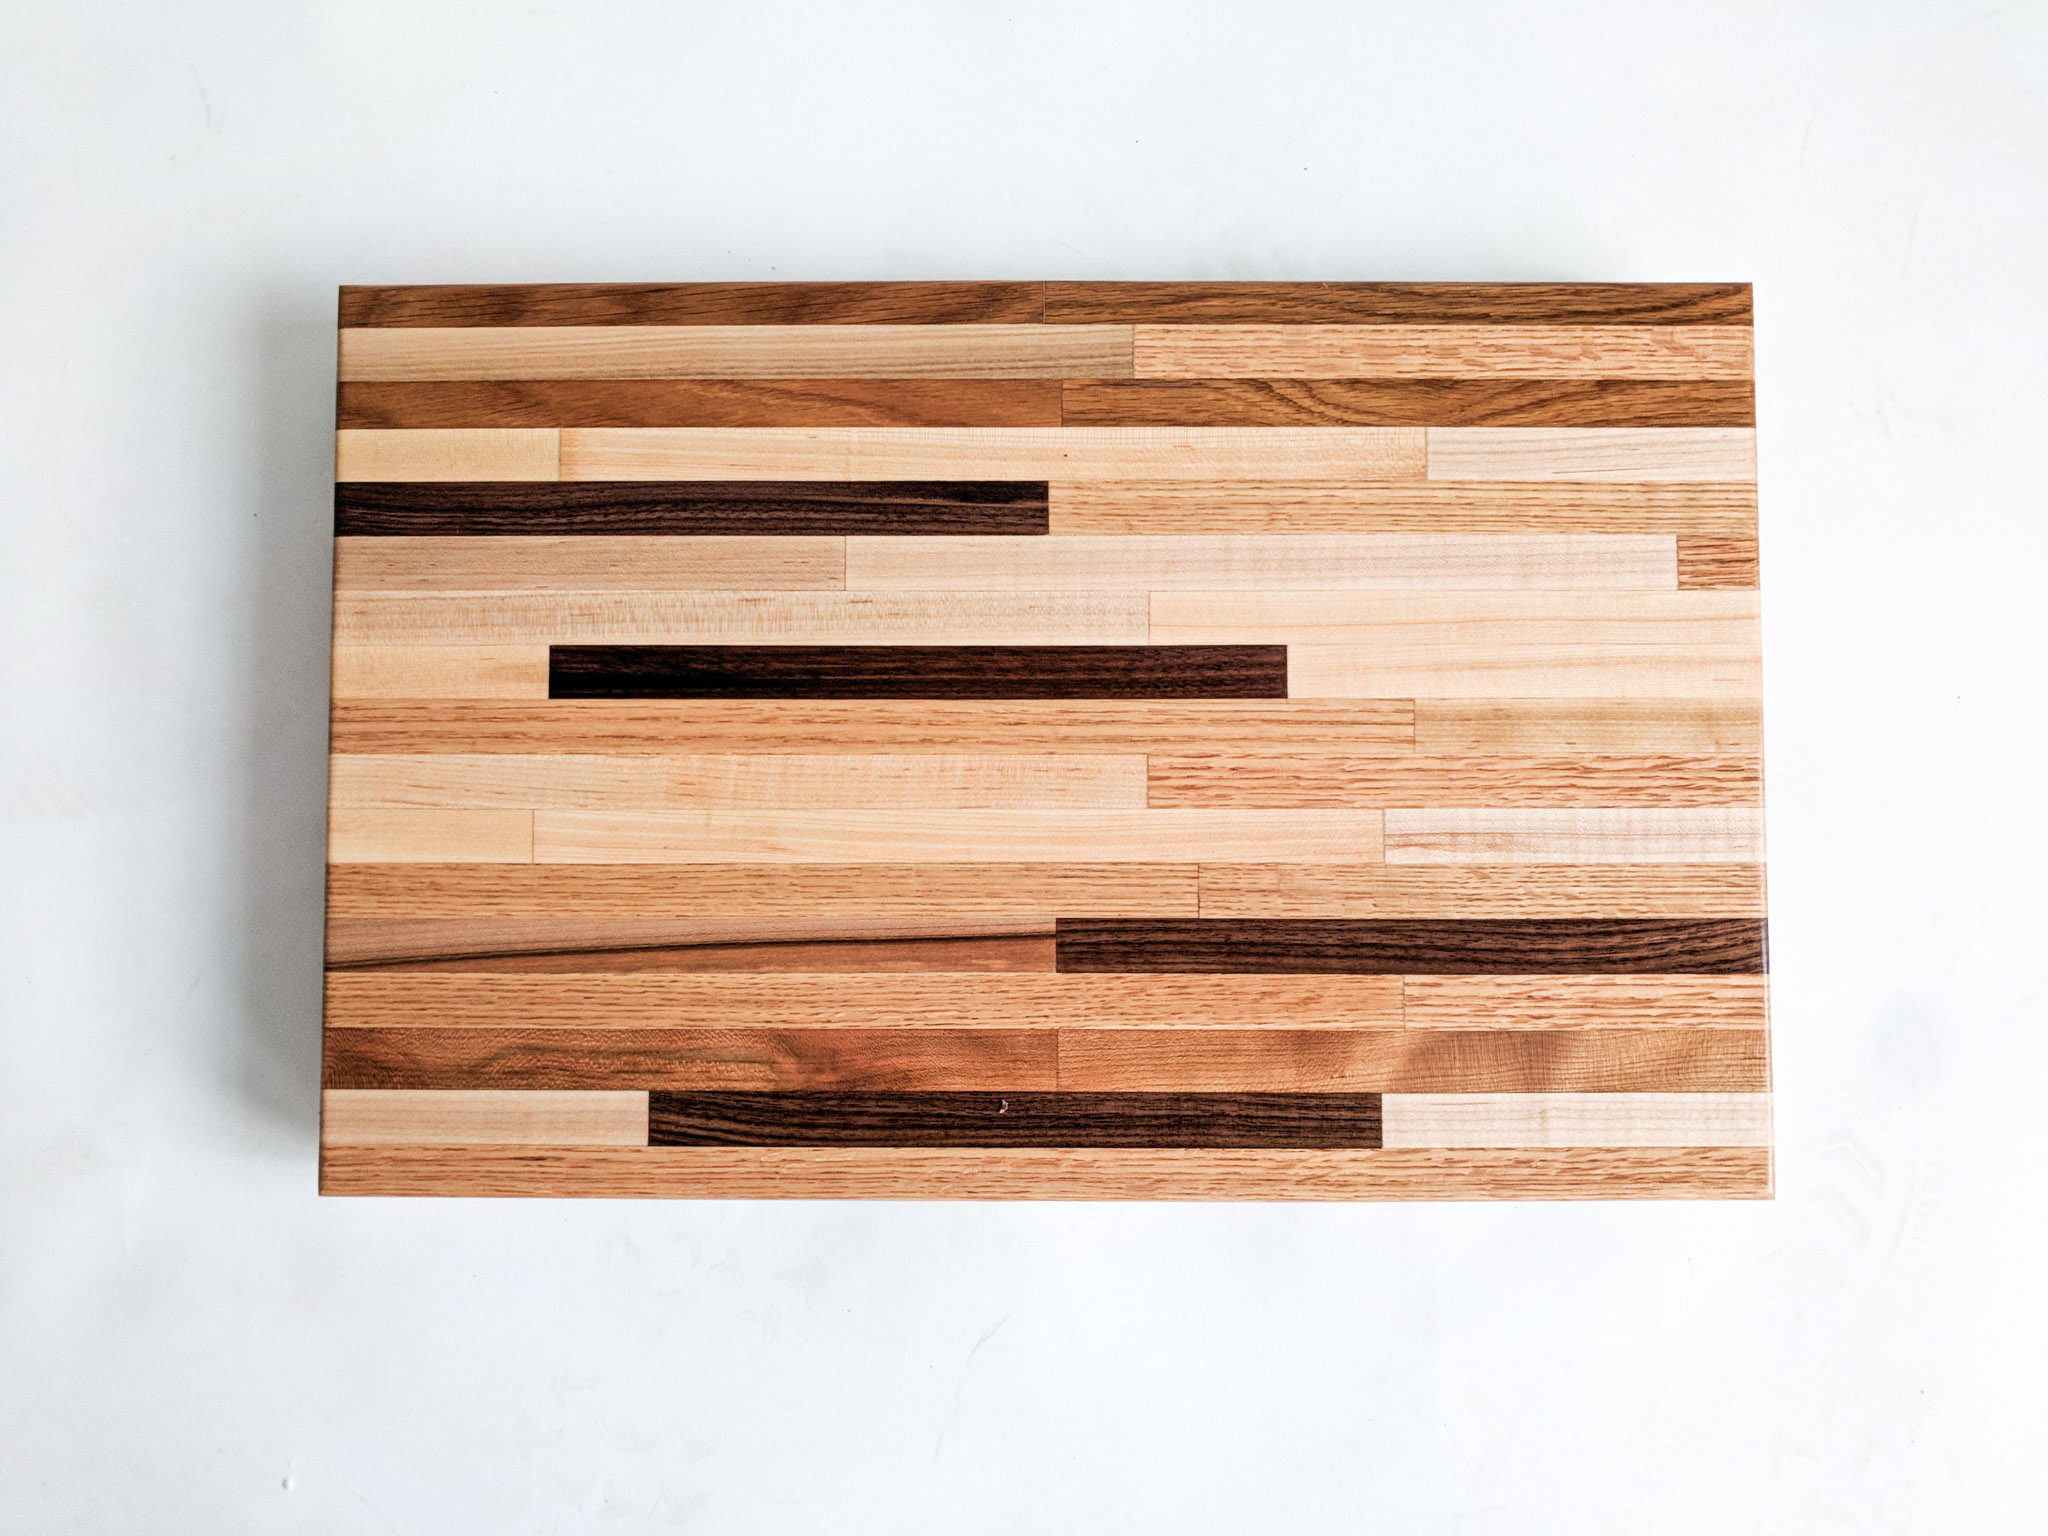 CuttingBoards-071418-8.jpg